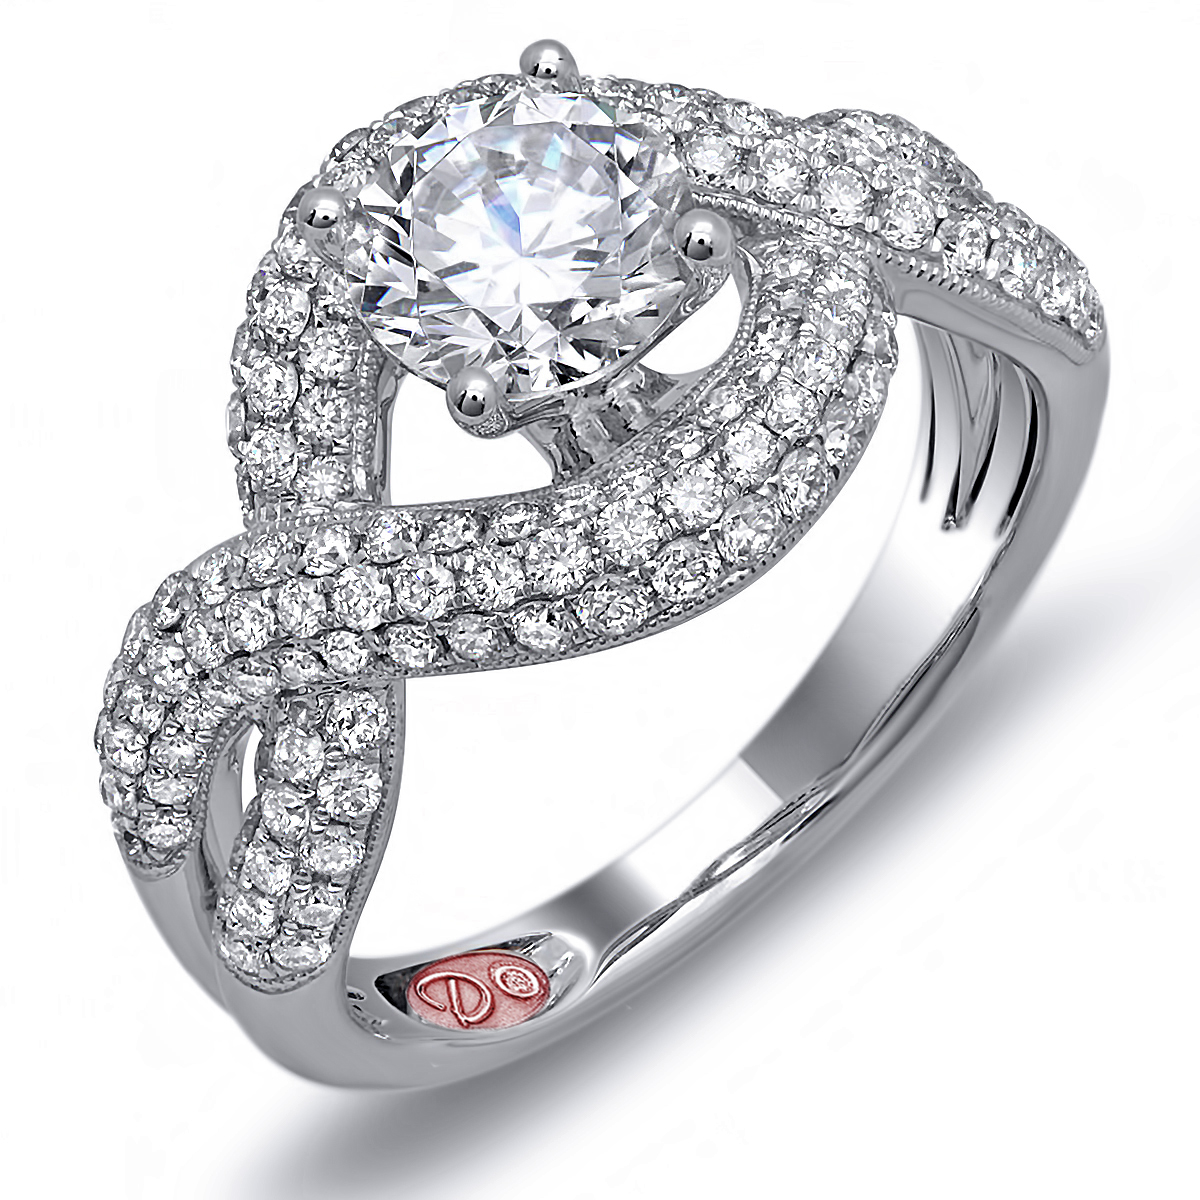 The Best of Platinum Engagement Rings